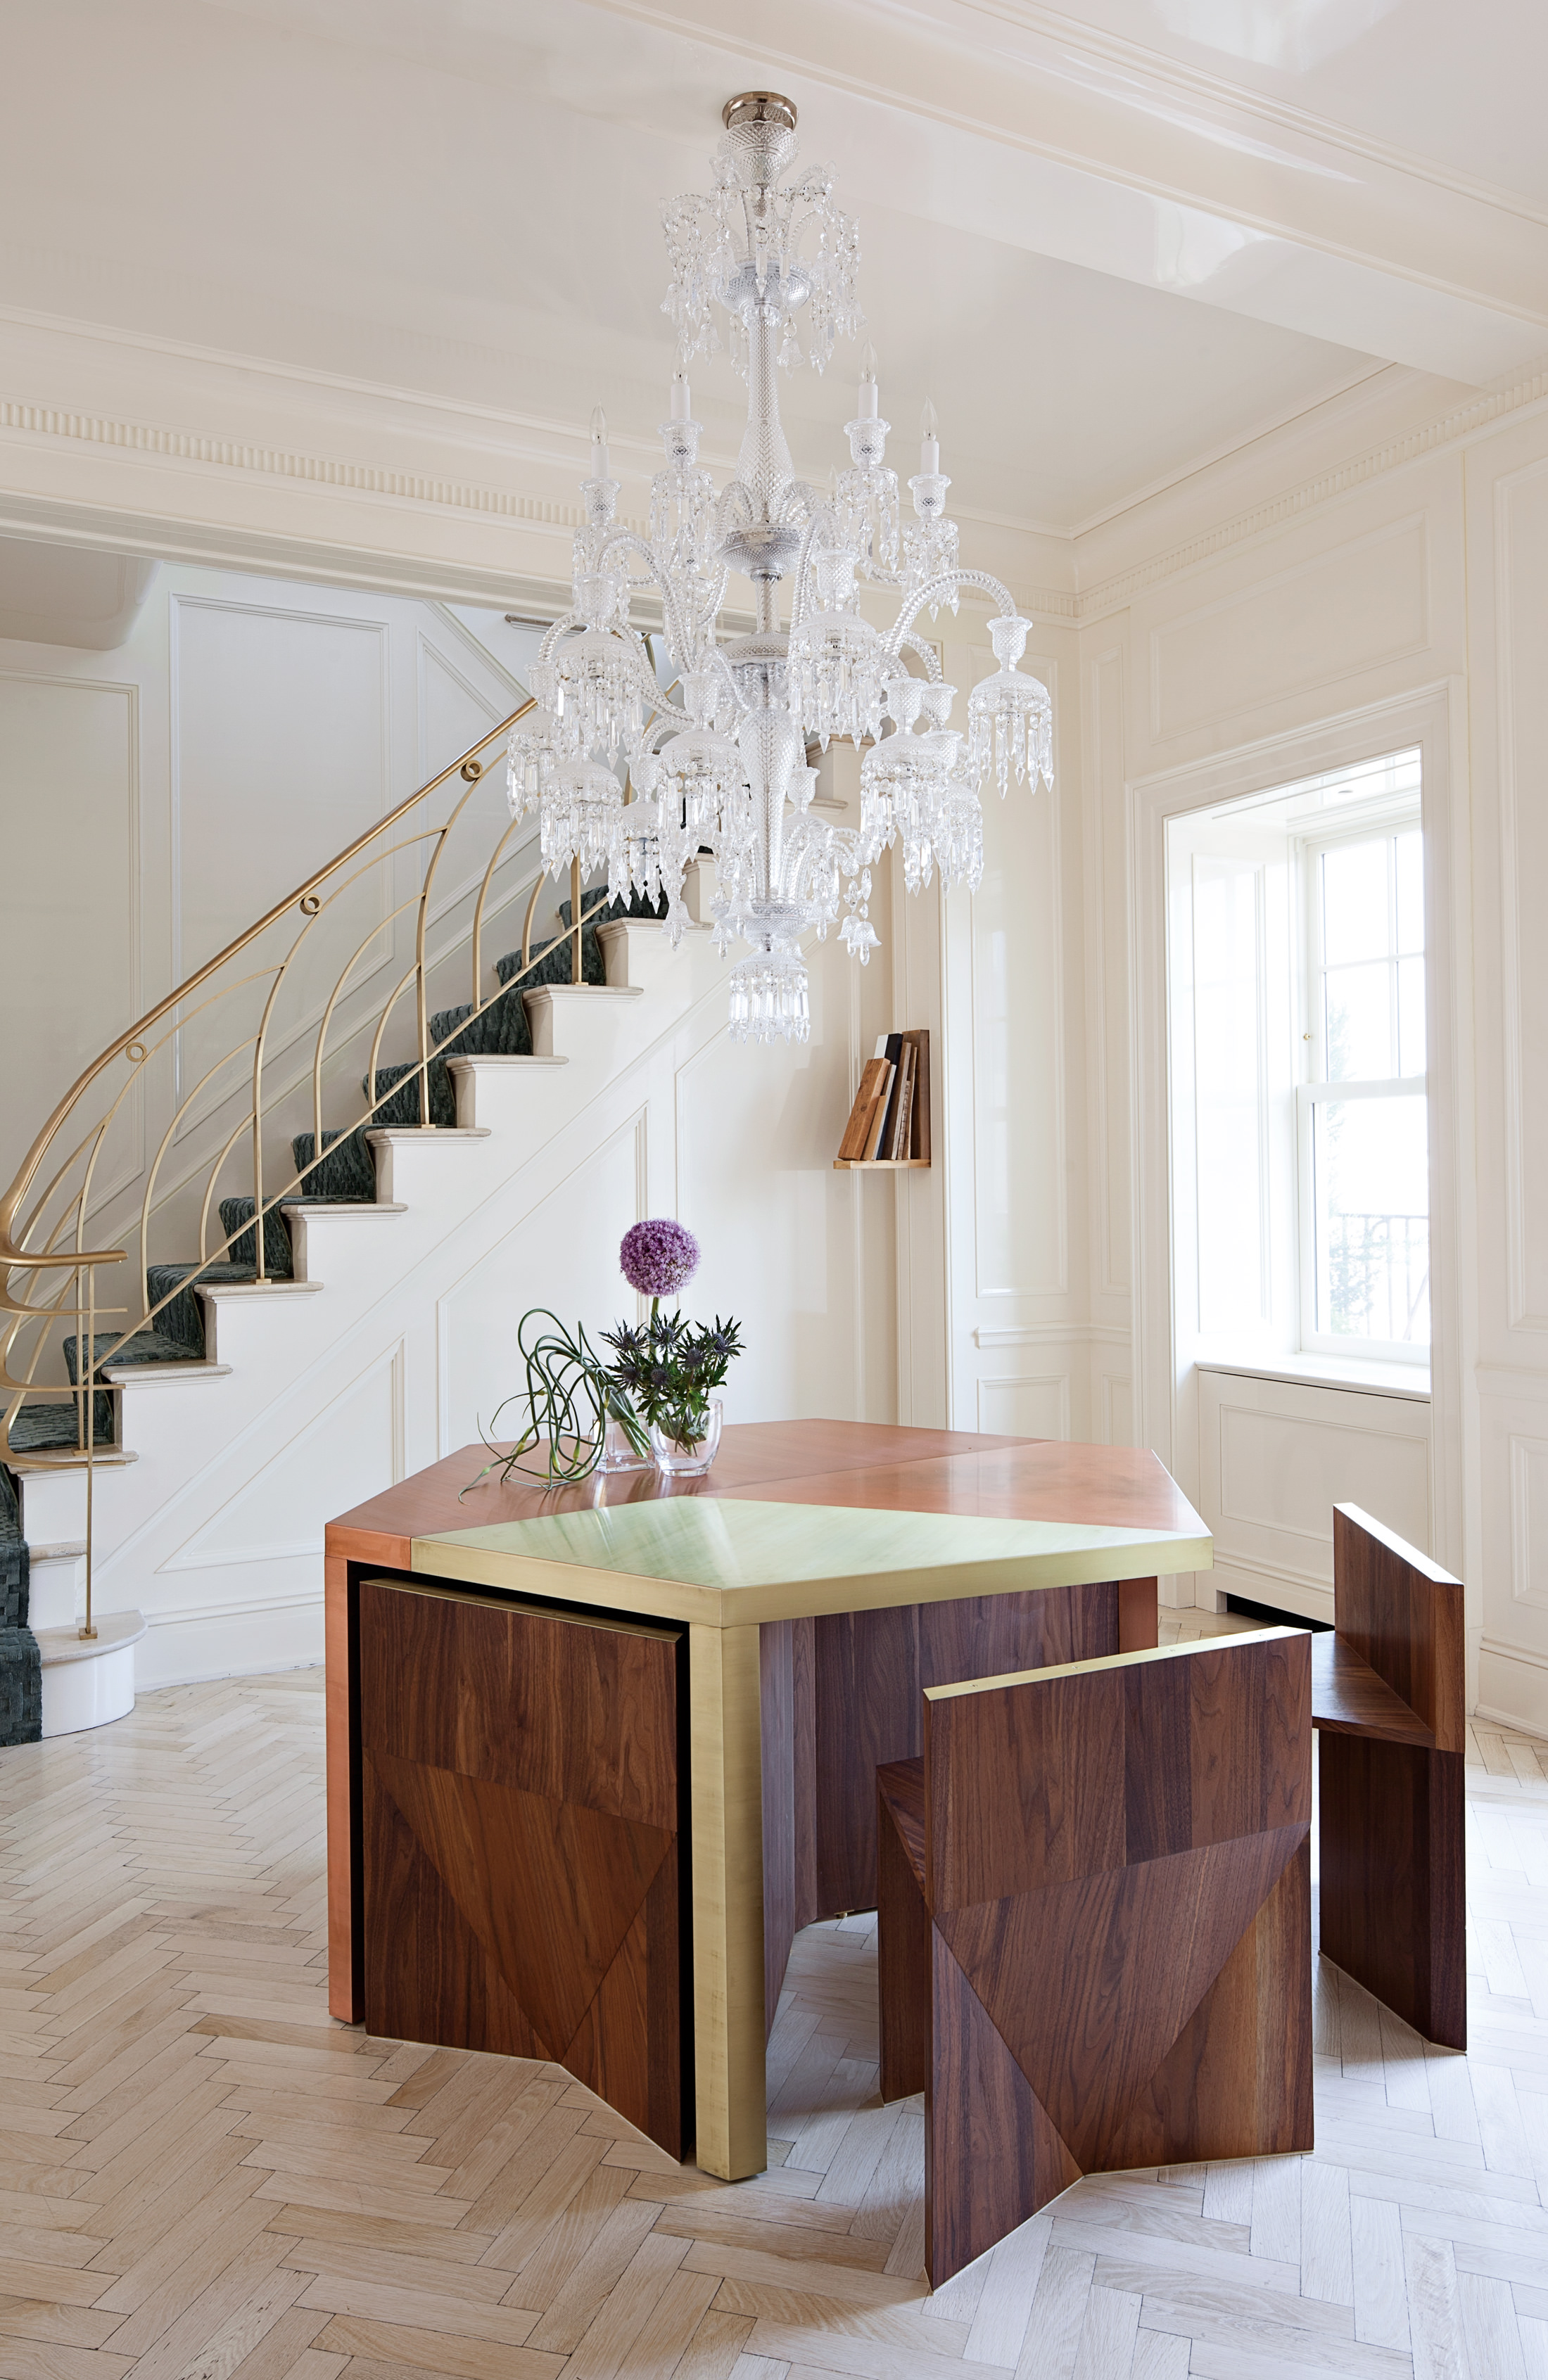 Copper and walnut hexagonal table beneath a baccarat chandelier photo floto warner and rafael de cárdenas ltd architecture at large